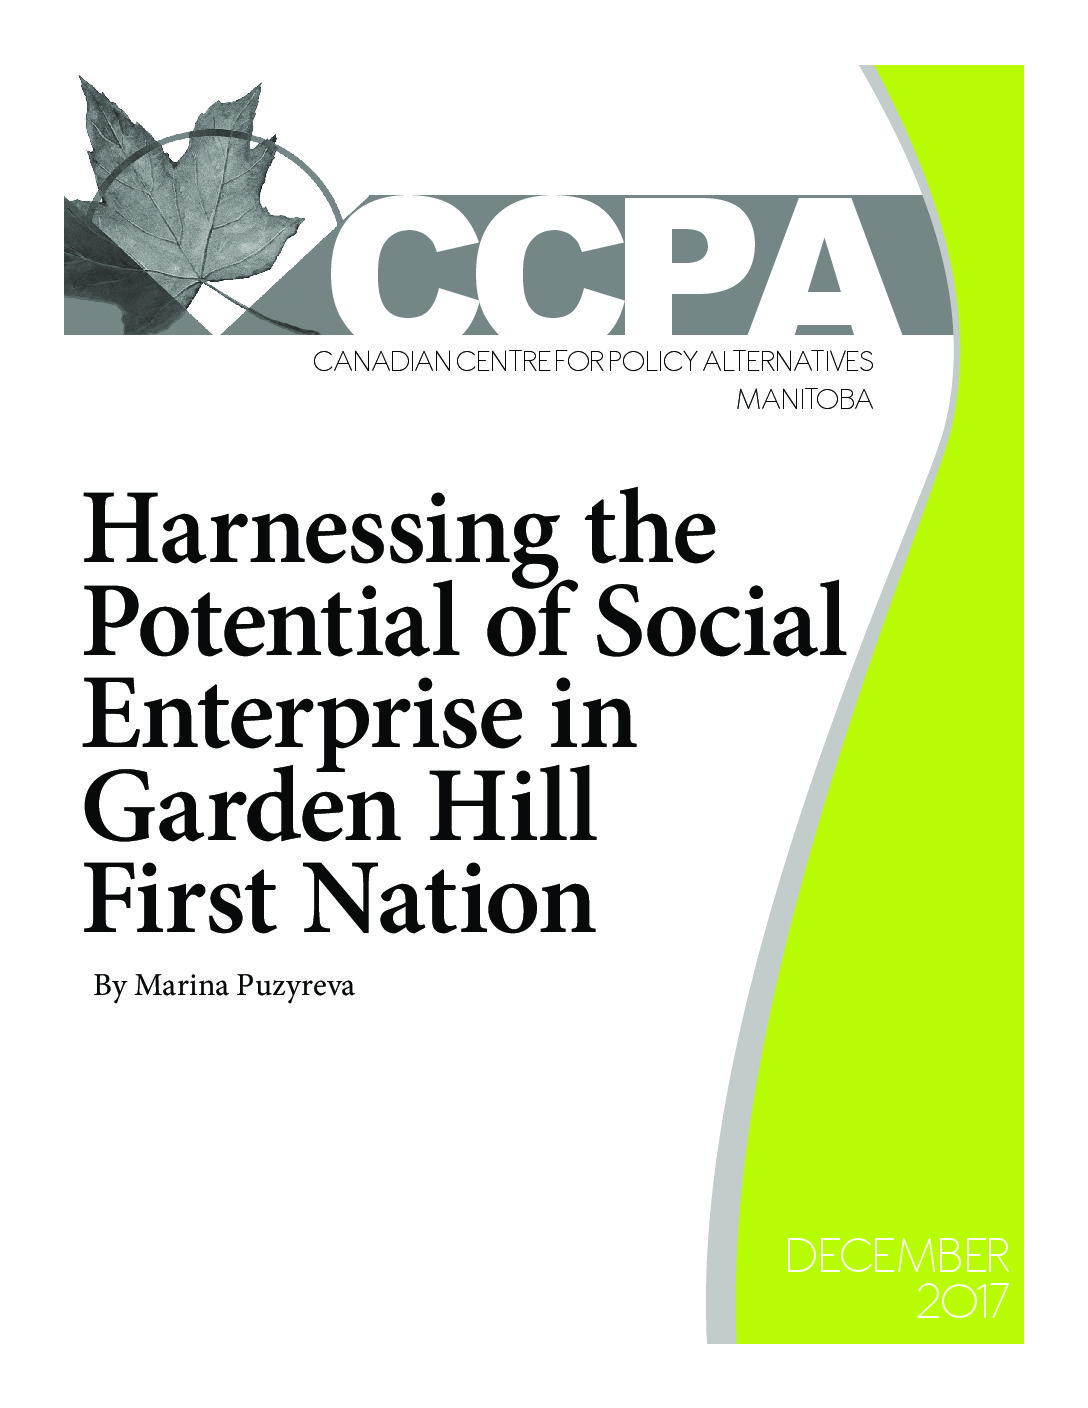 Harnessing the Potential of Social Enterprise in Garden Hill First Nation